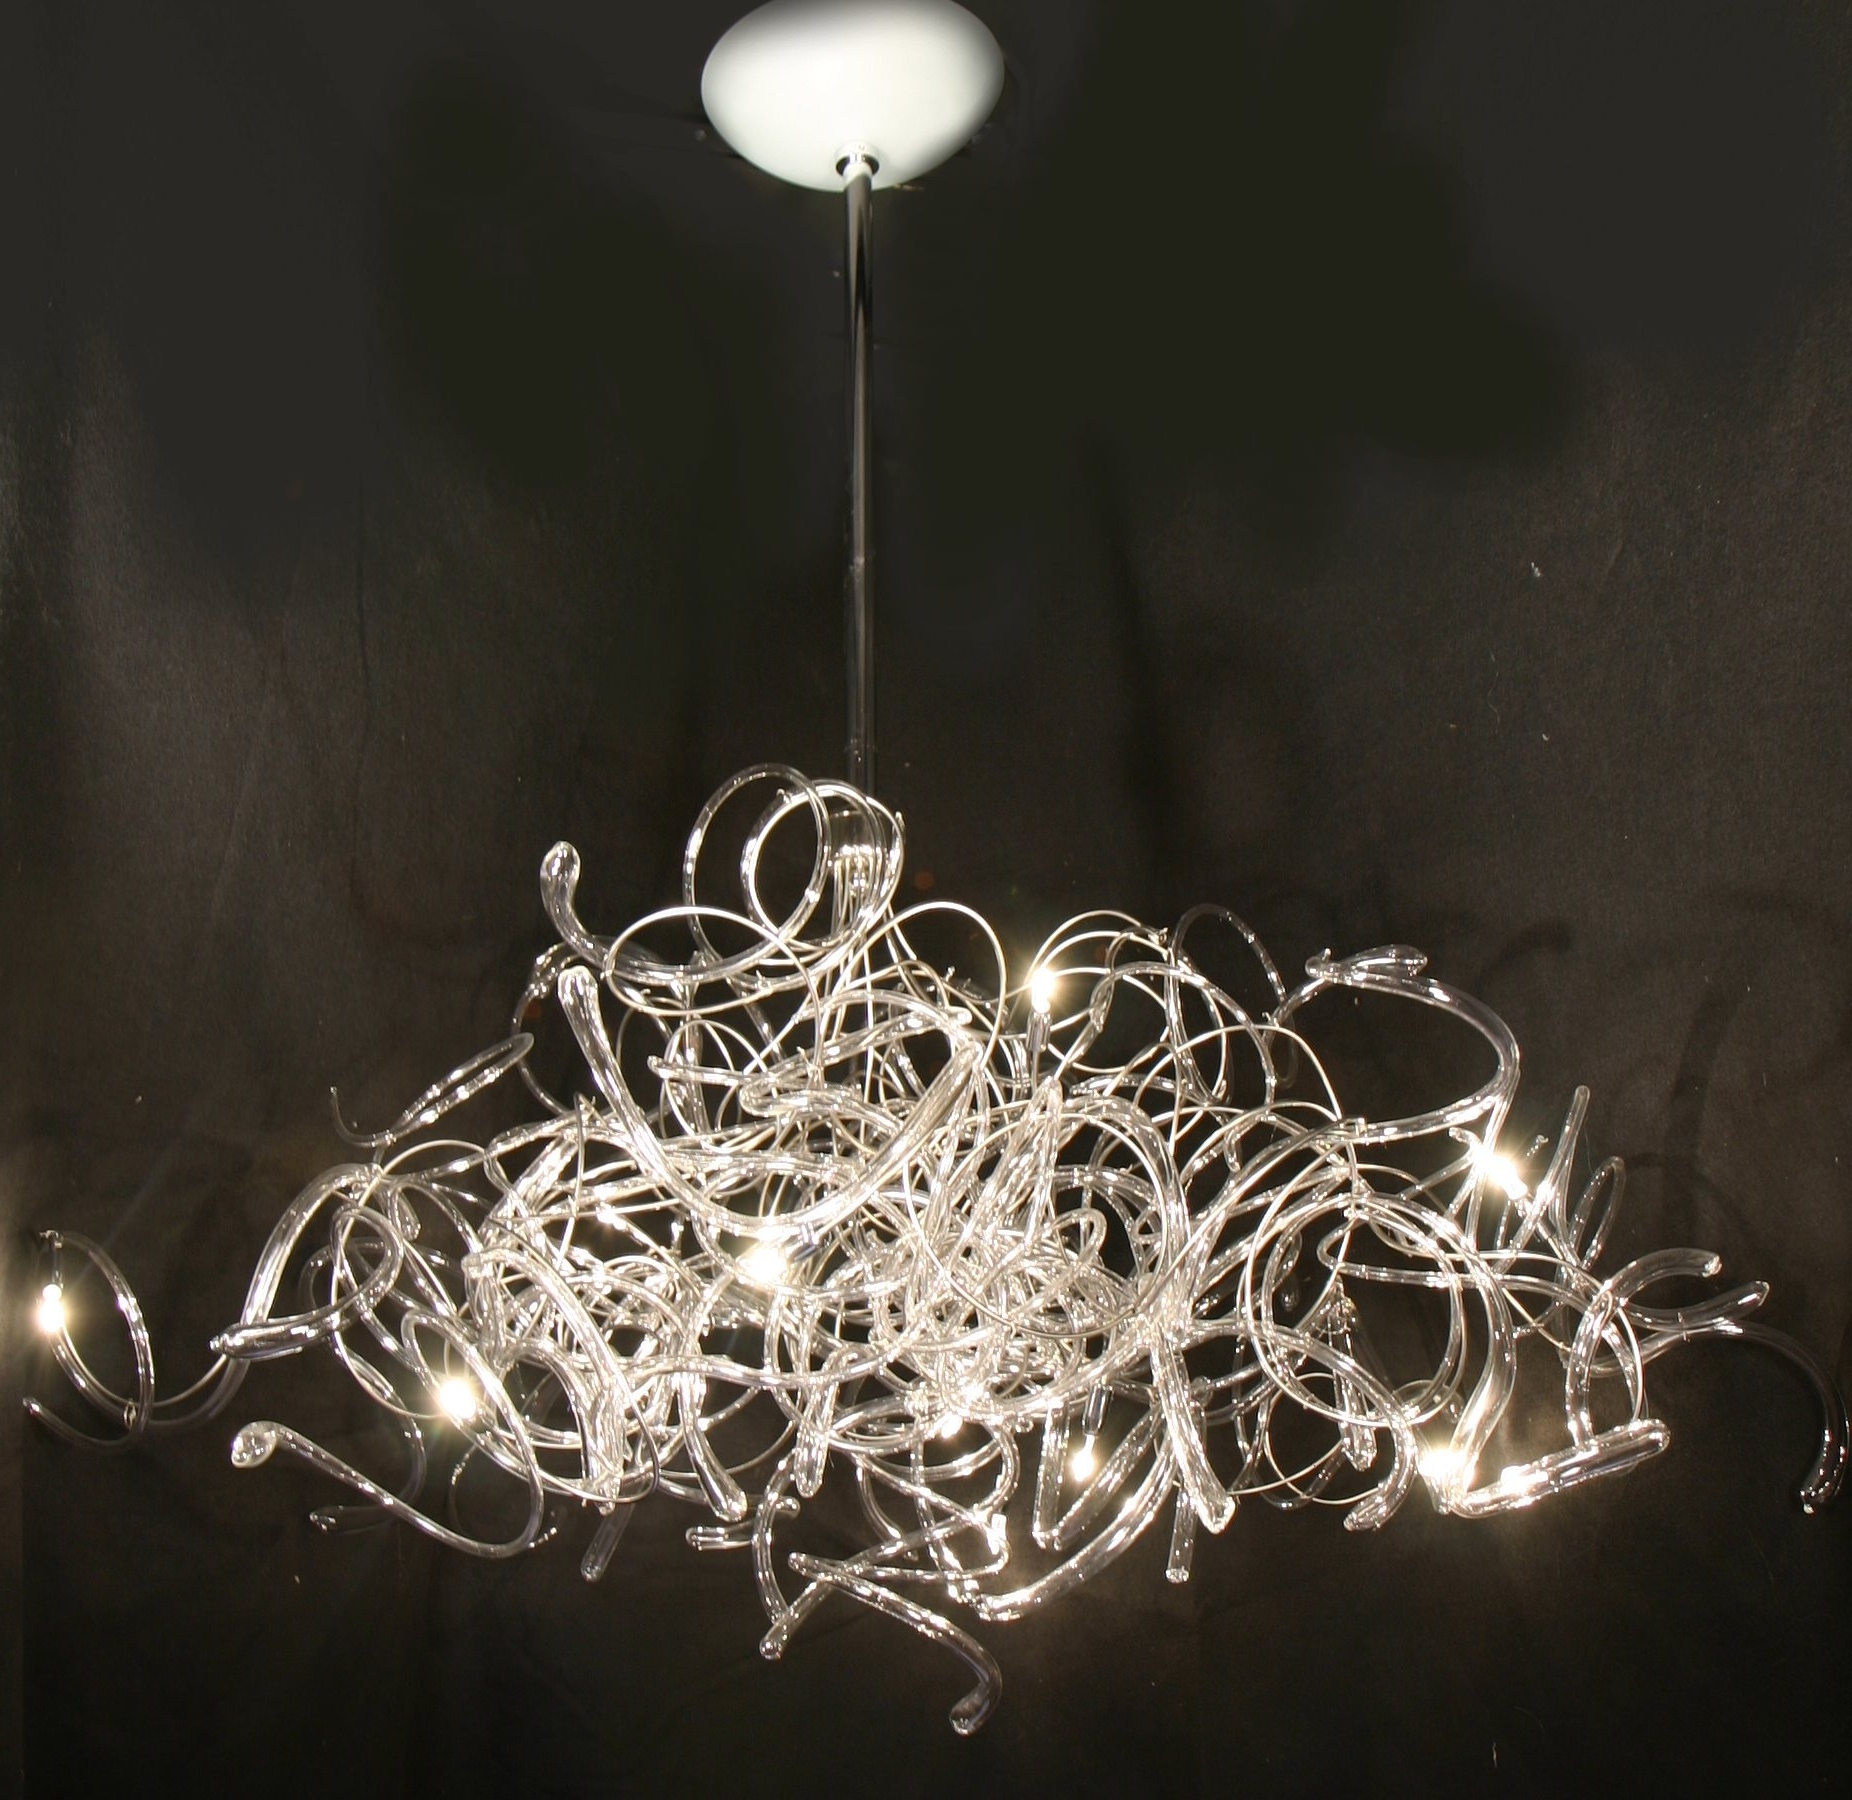 Ultra Modern Chandelier For Recent Ultra Modern Chandelier Lighting – Musethecollective (Gallery 2 of 20)